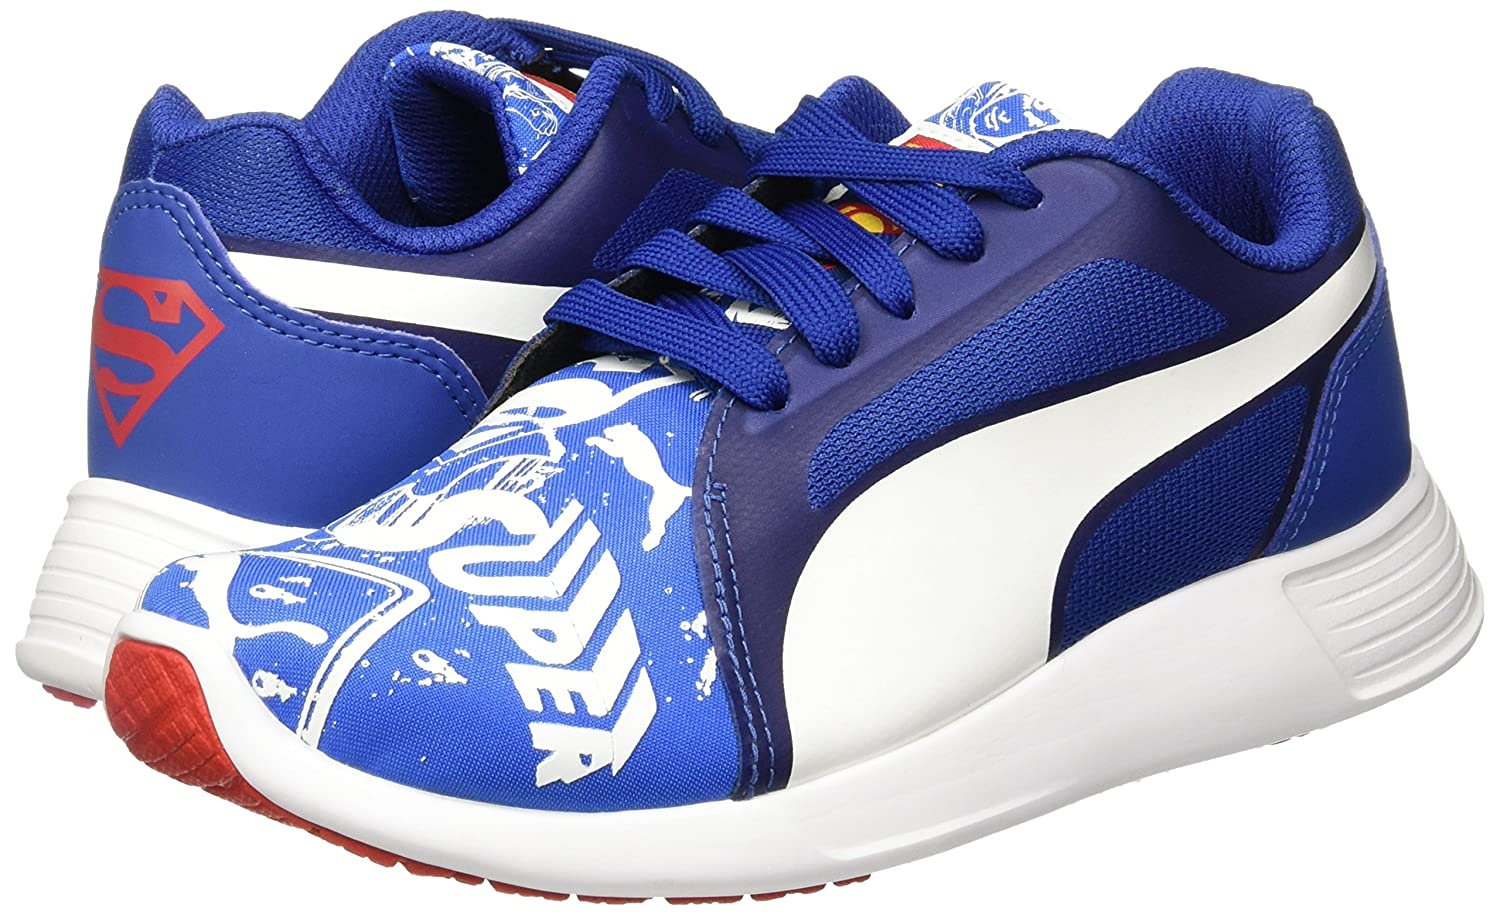 Puma Boy s St Trainer Evo Superman Street Jr Sneakers  Buy Online at Low  Prices in India - Amazon.in 8f2af95e8